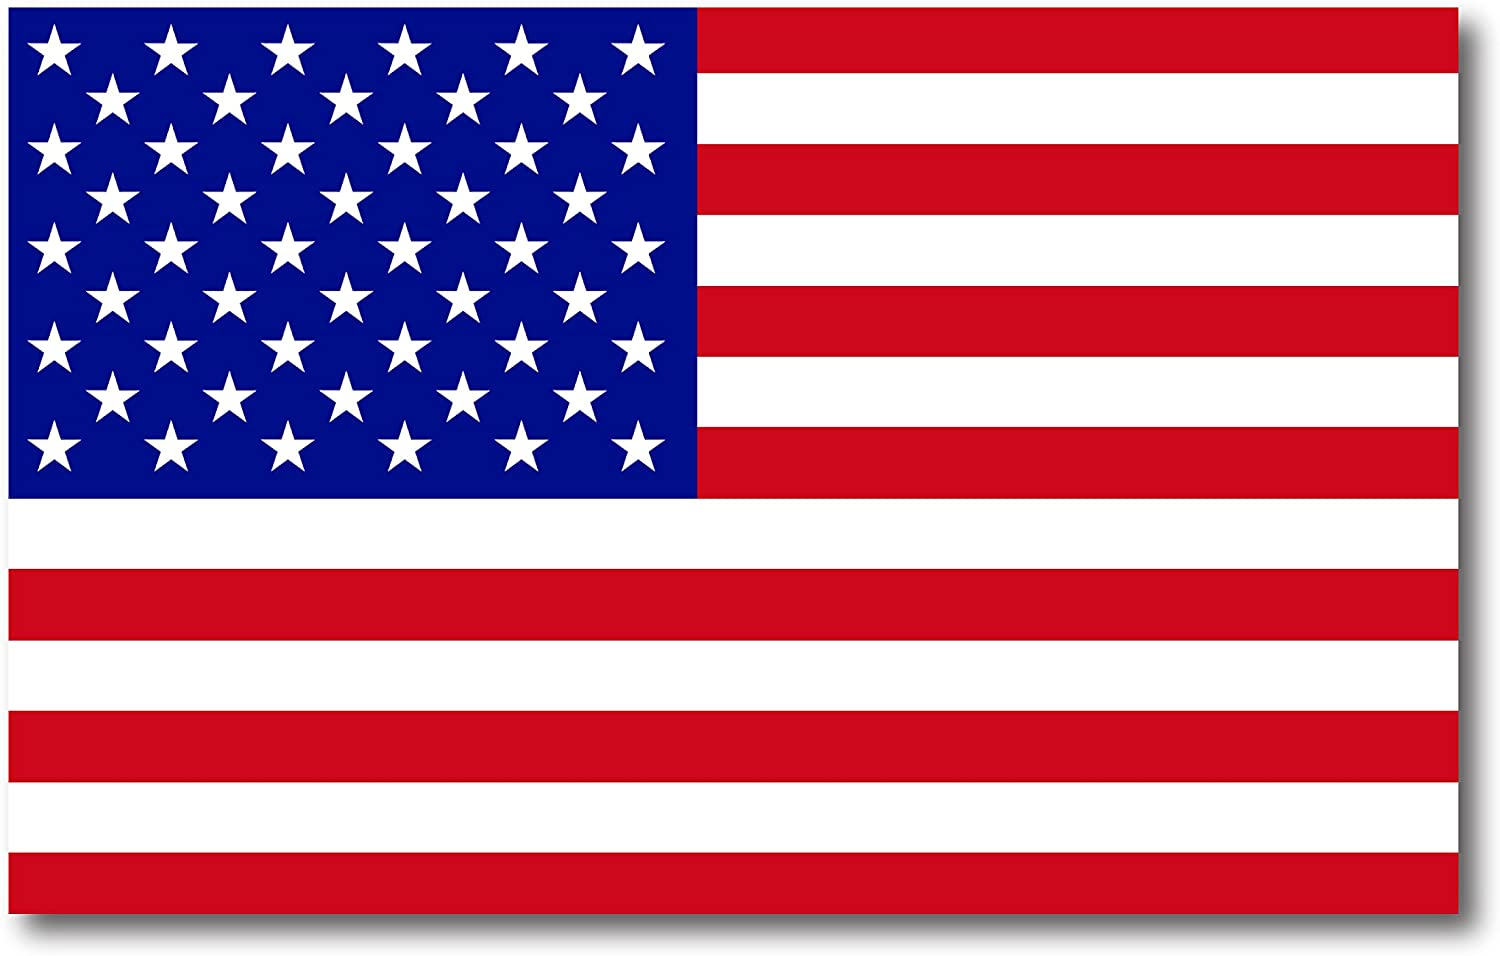 American Flag Car Magnet Decal - 5 x 8 Heavy Duty for Car Truck SUV Waterproof